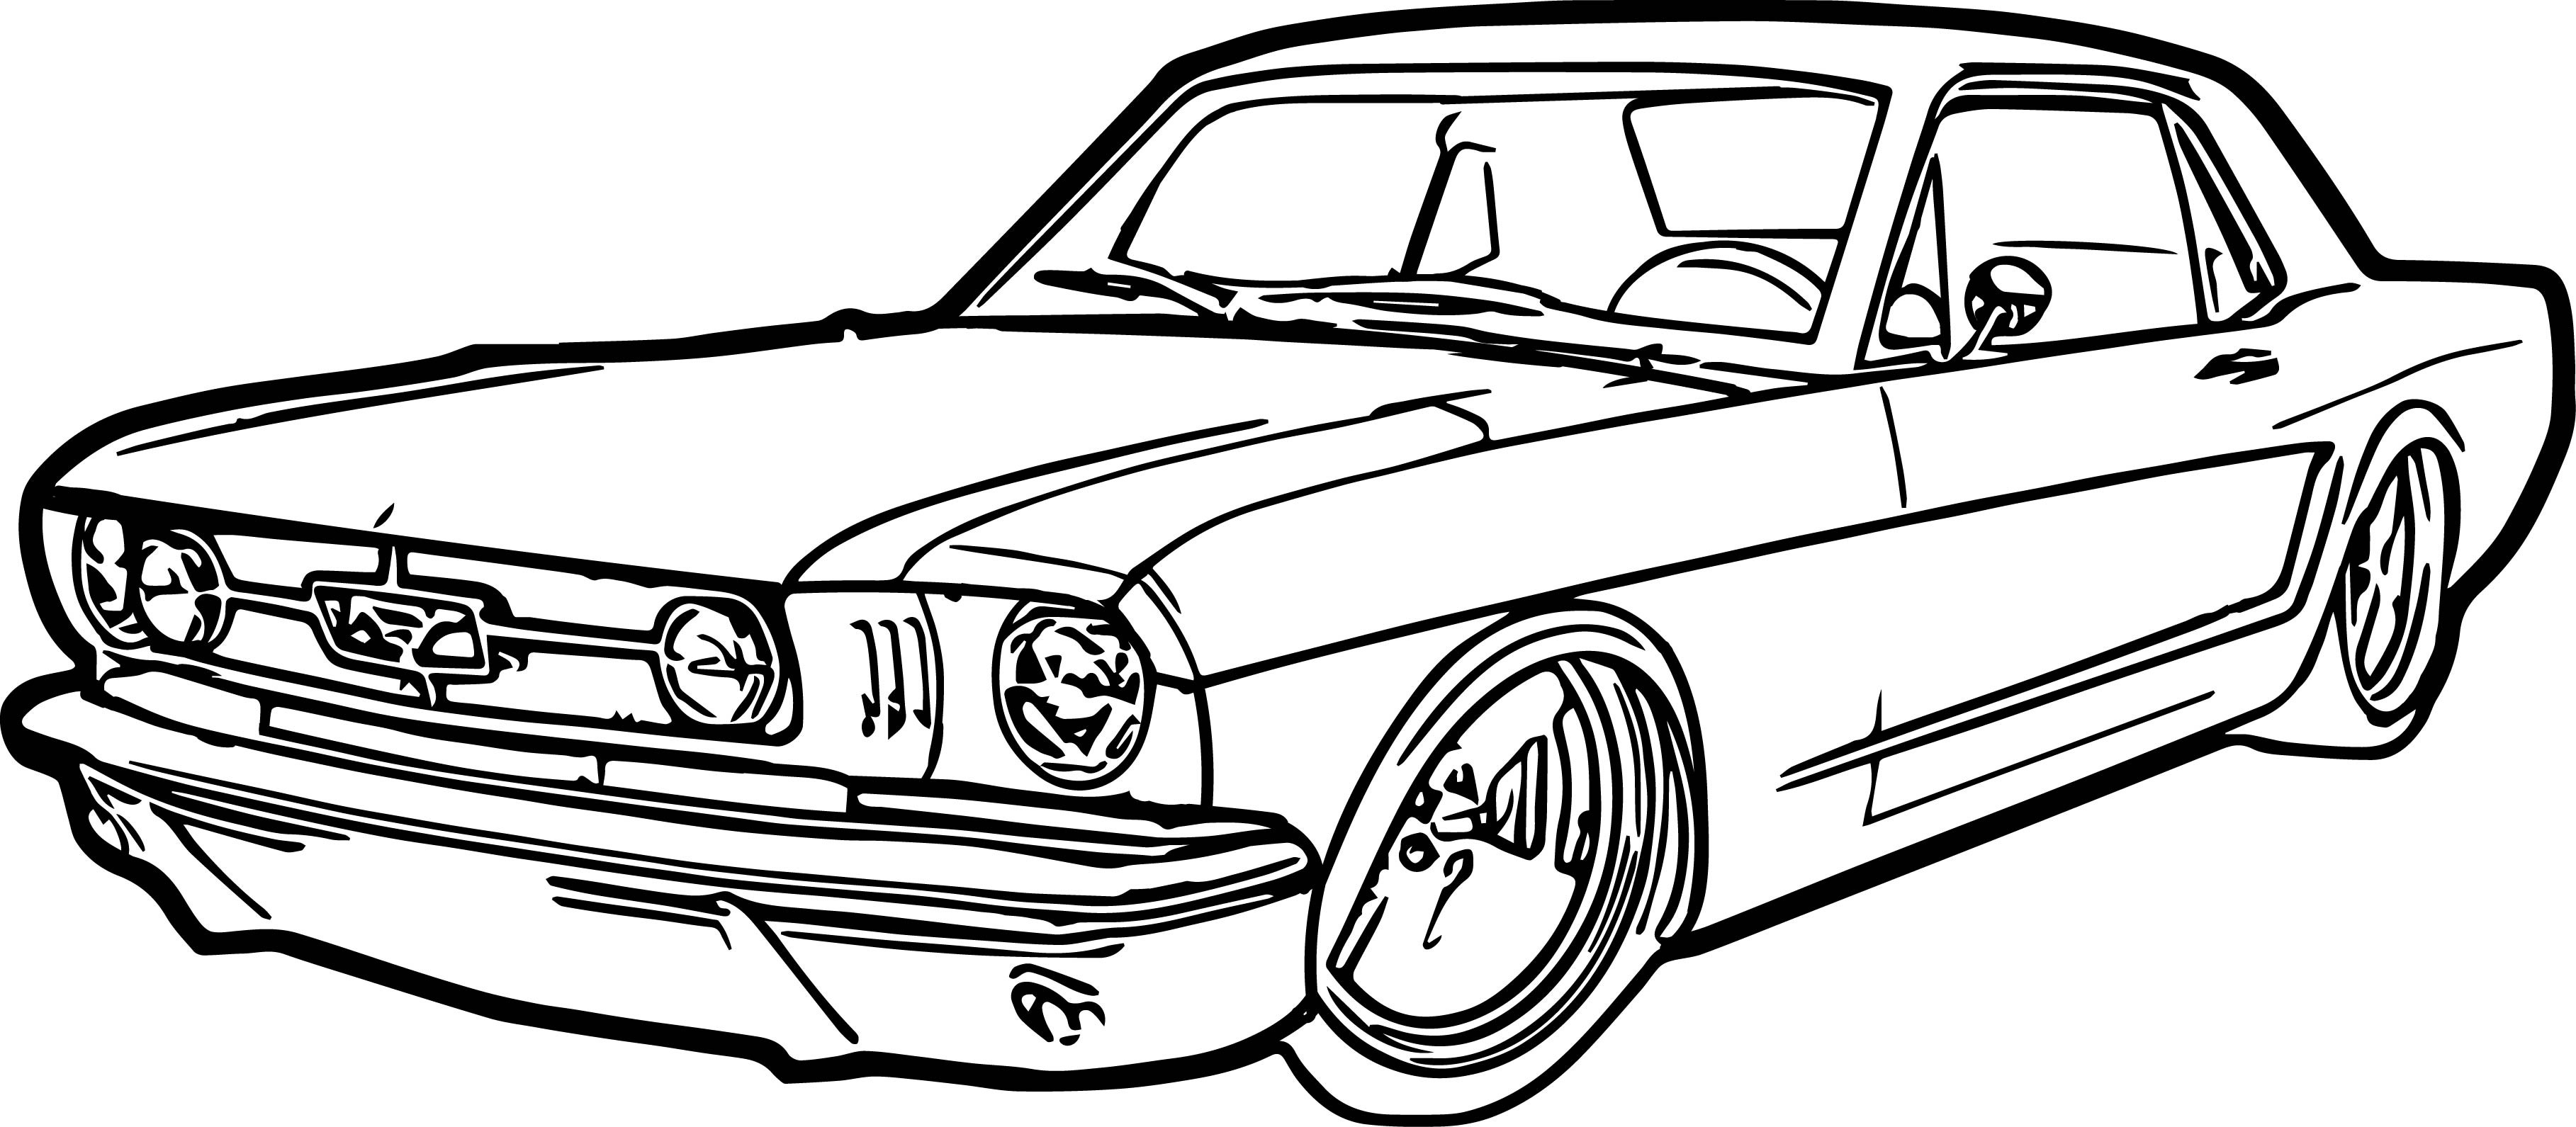 mustang coloring pages printable mustang coloring pages for kids cool2bkids pages coloring mustang